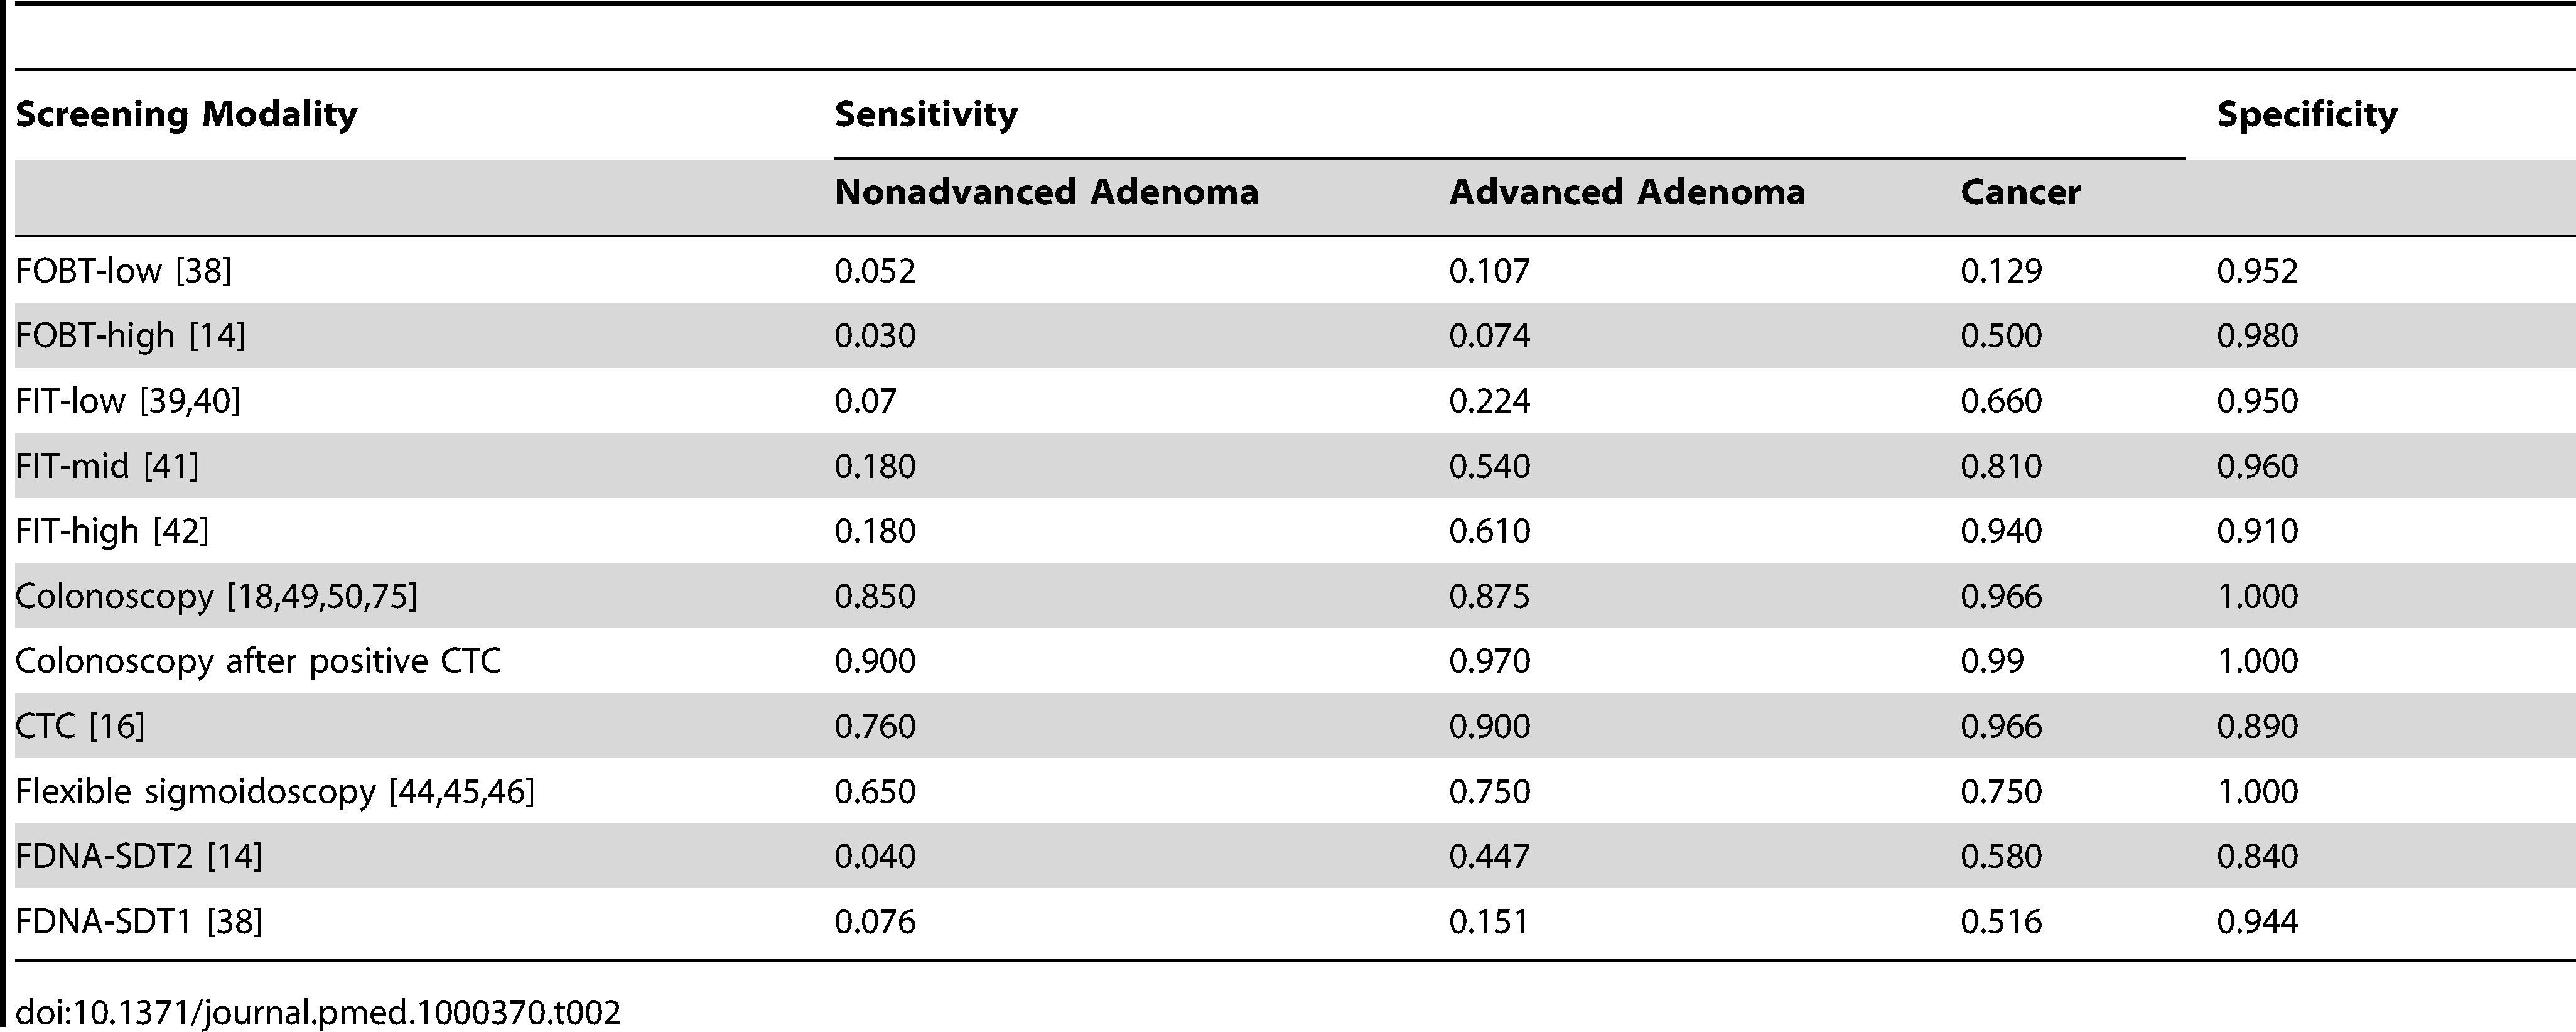 Base case test performance characteristics for the screening modalities.